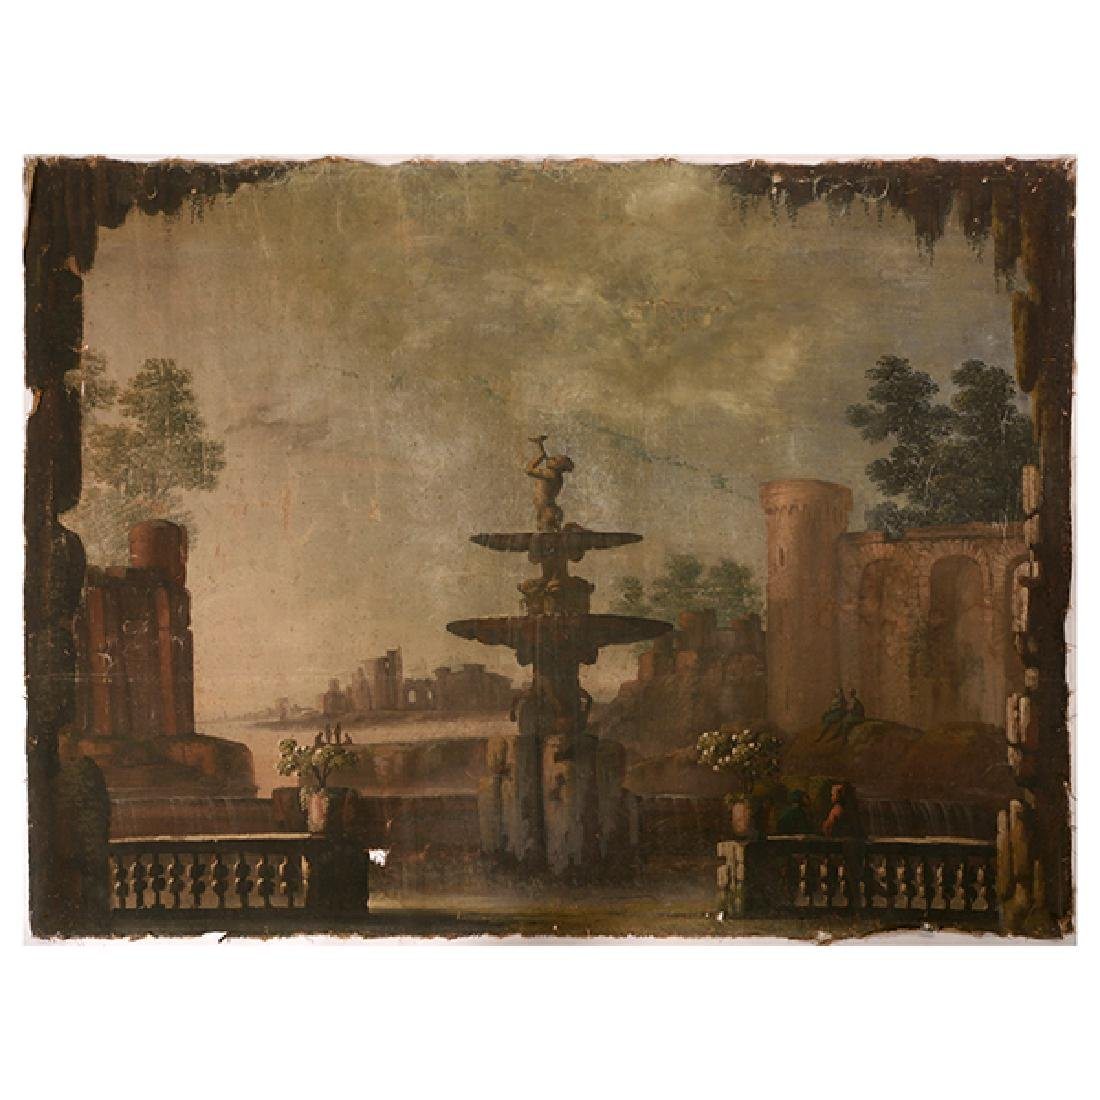 Italian Rococo Revival Painted Canvas Panel with